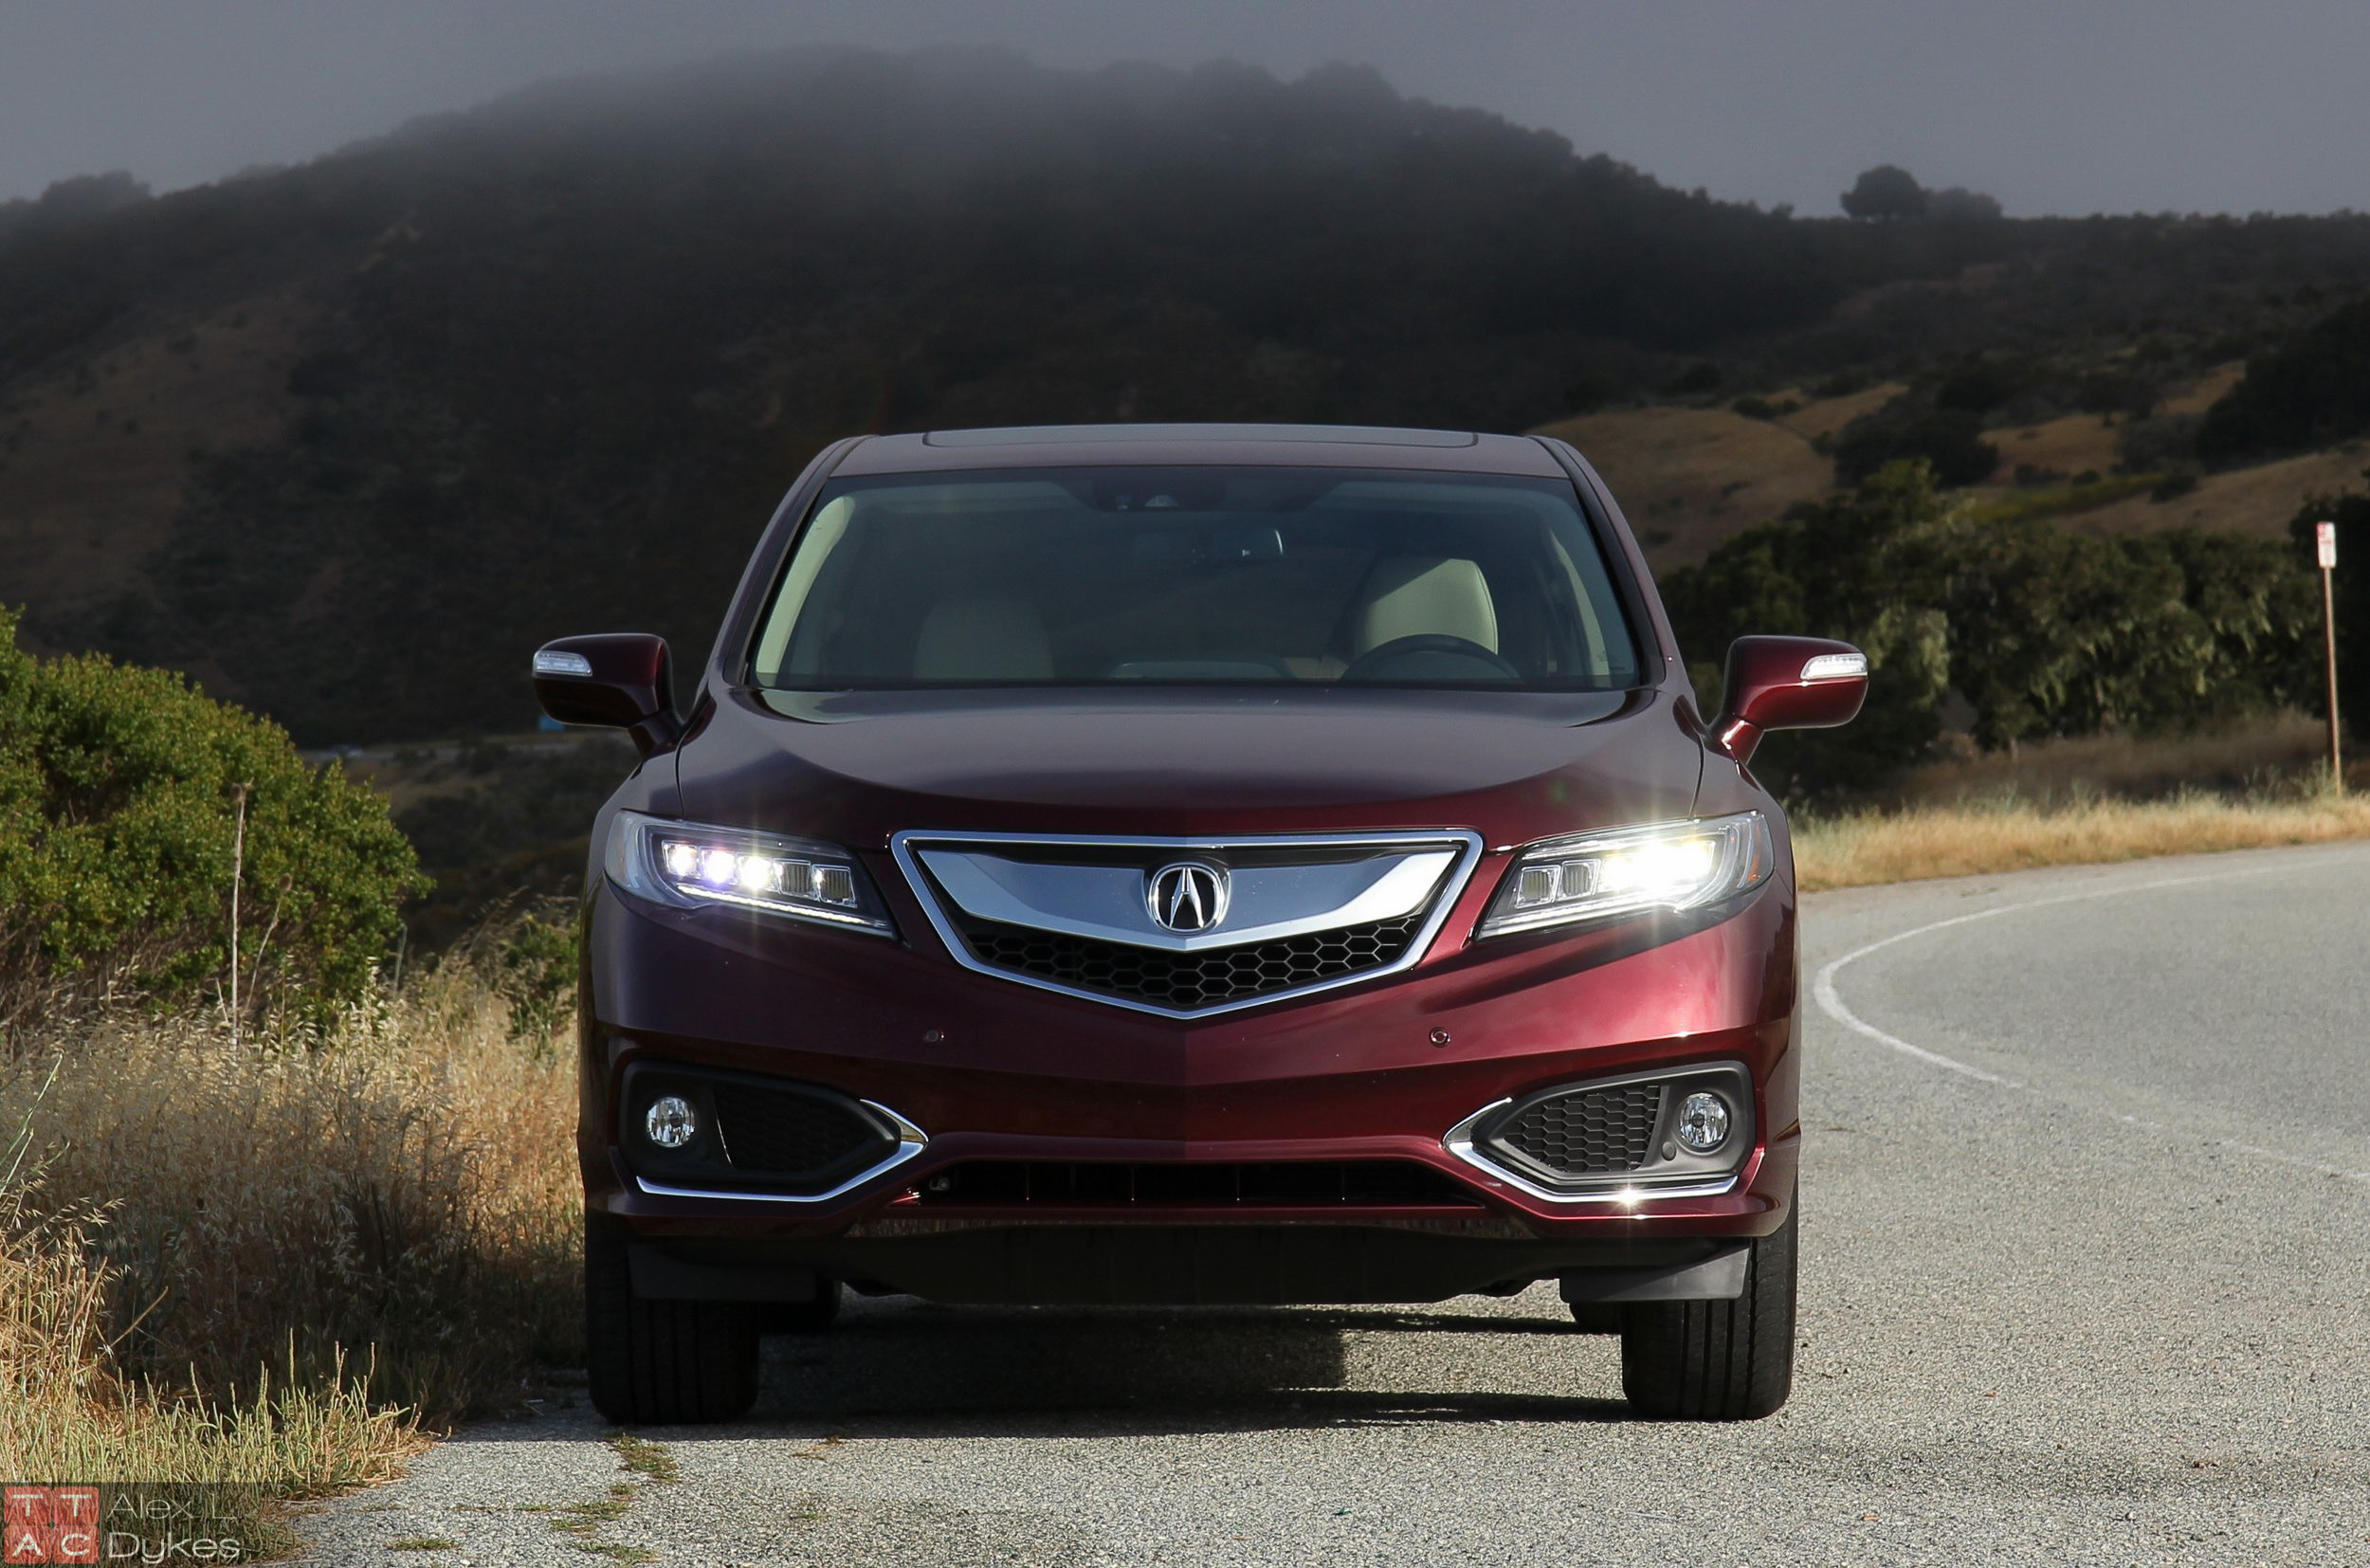 2015 Tlx 0 To 60 | Release date, Specs, Review, Redesign and Price